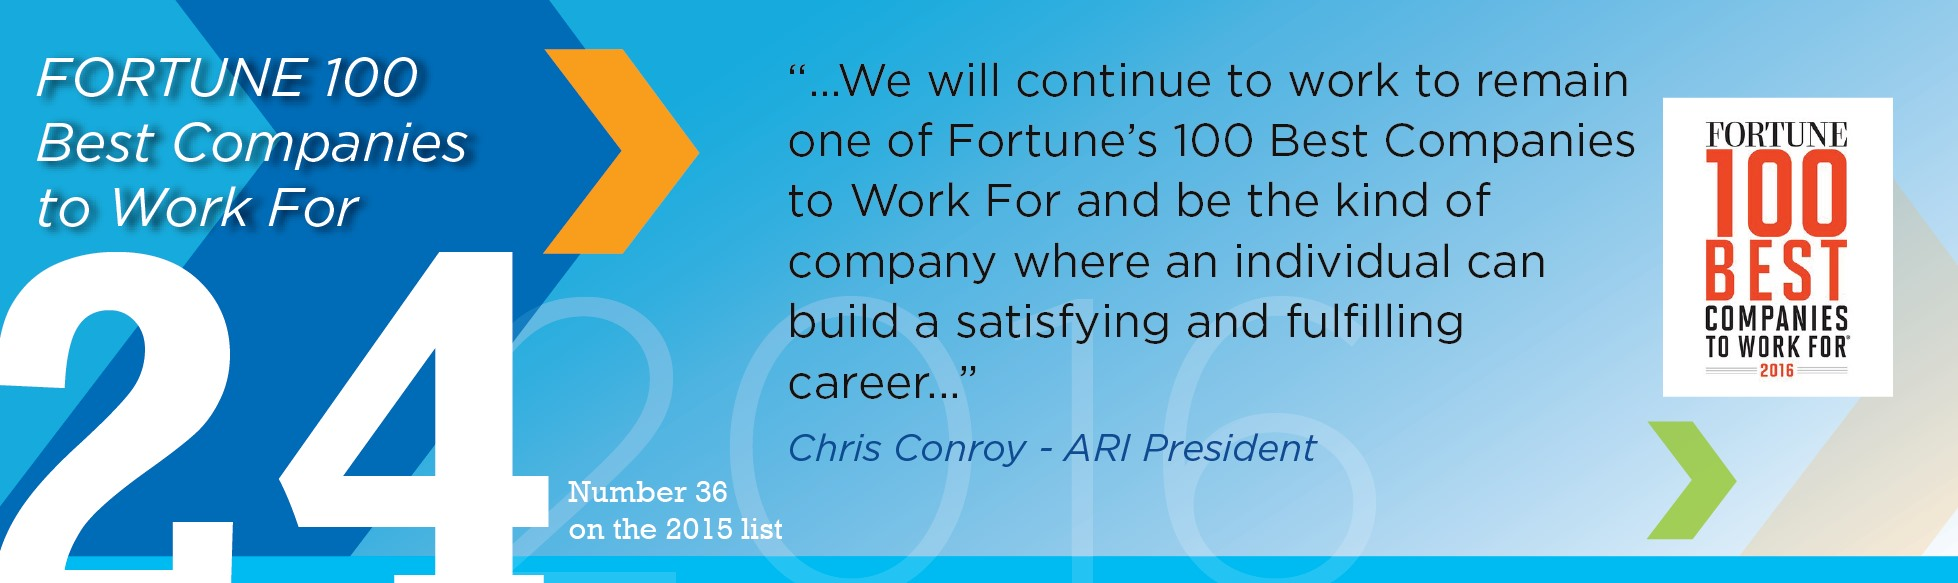 Number 24 in Fortune 100 Best Companies To Work For 2016®